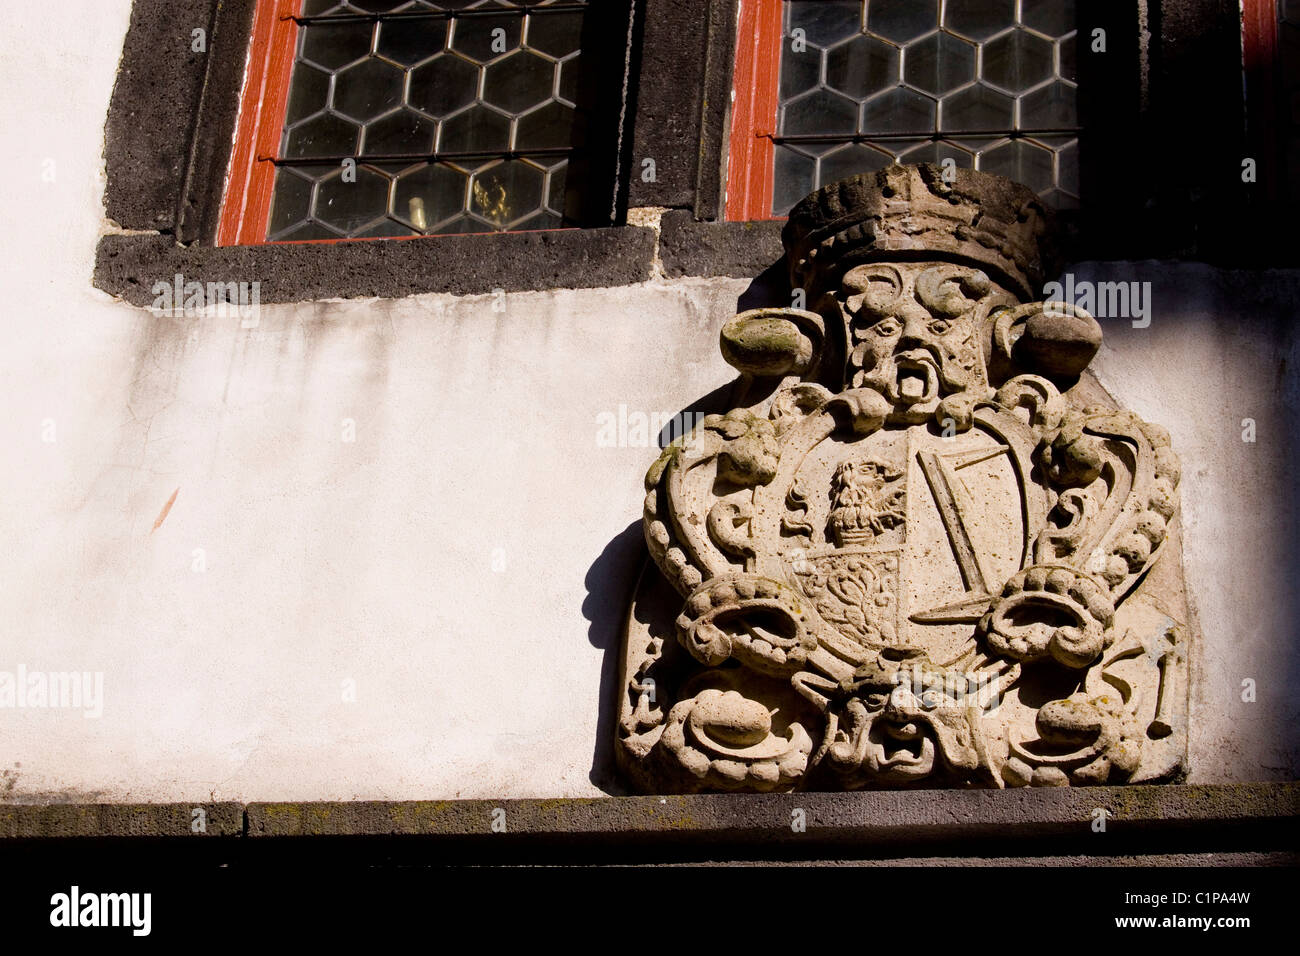 Germany, Burg Eltz, coat of arms on castle facade - Stock Image